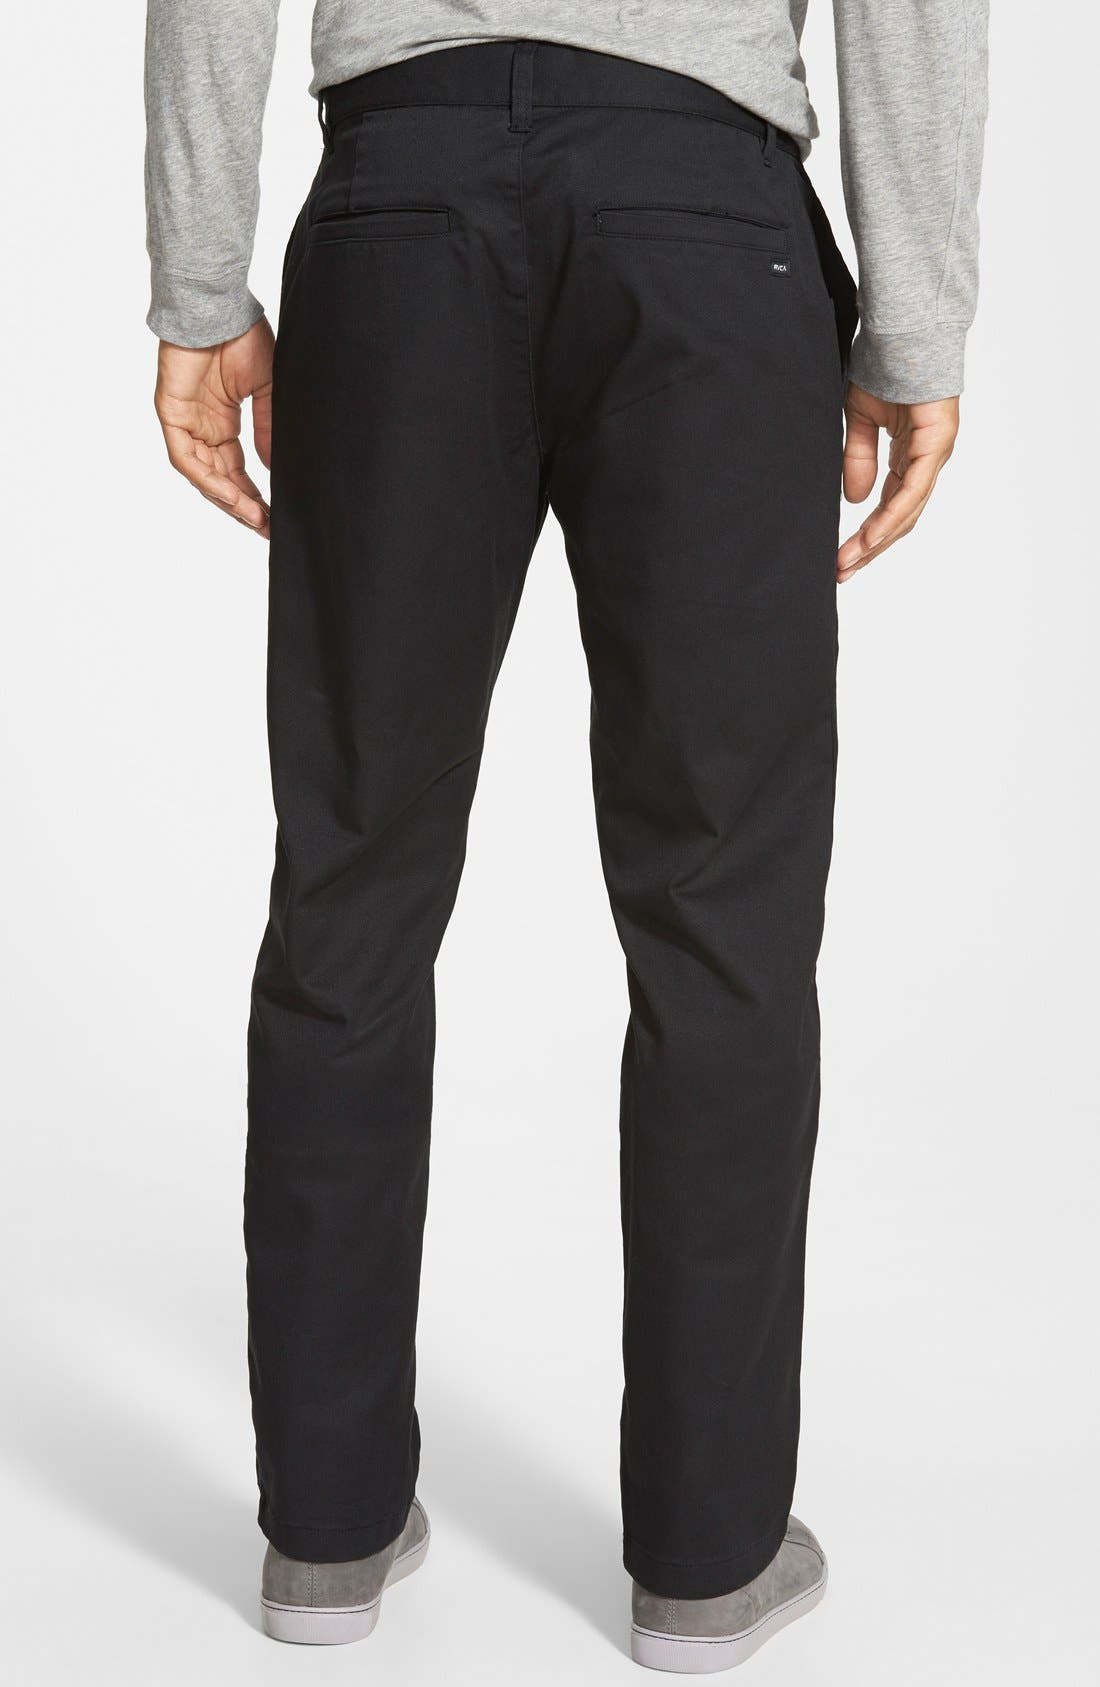 'The Week-End' Slim Straight Leg Stretch Twill Chinos,                             Alternate thumbnail 2, color,                             BLACK